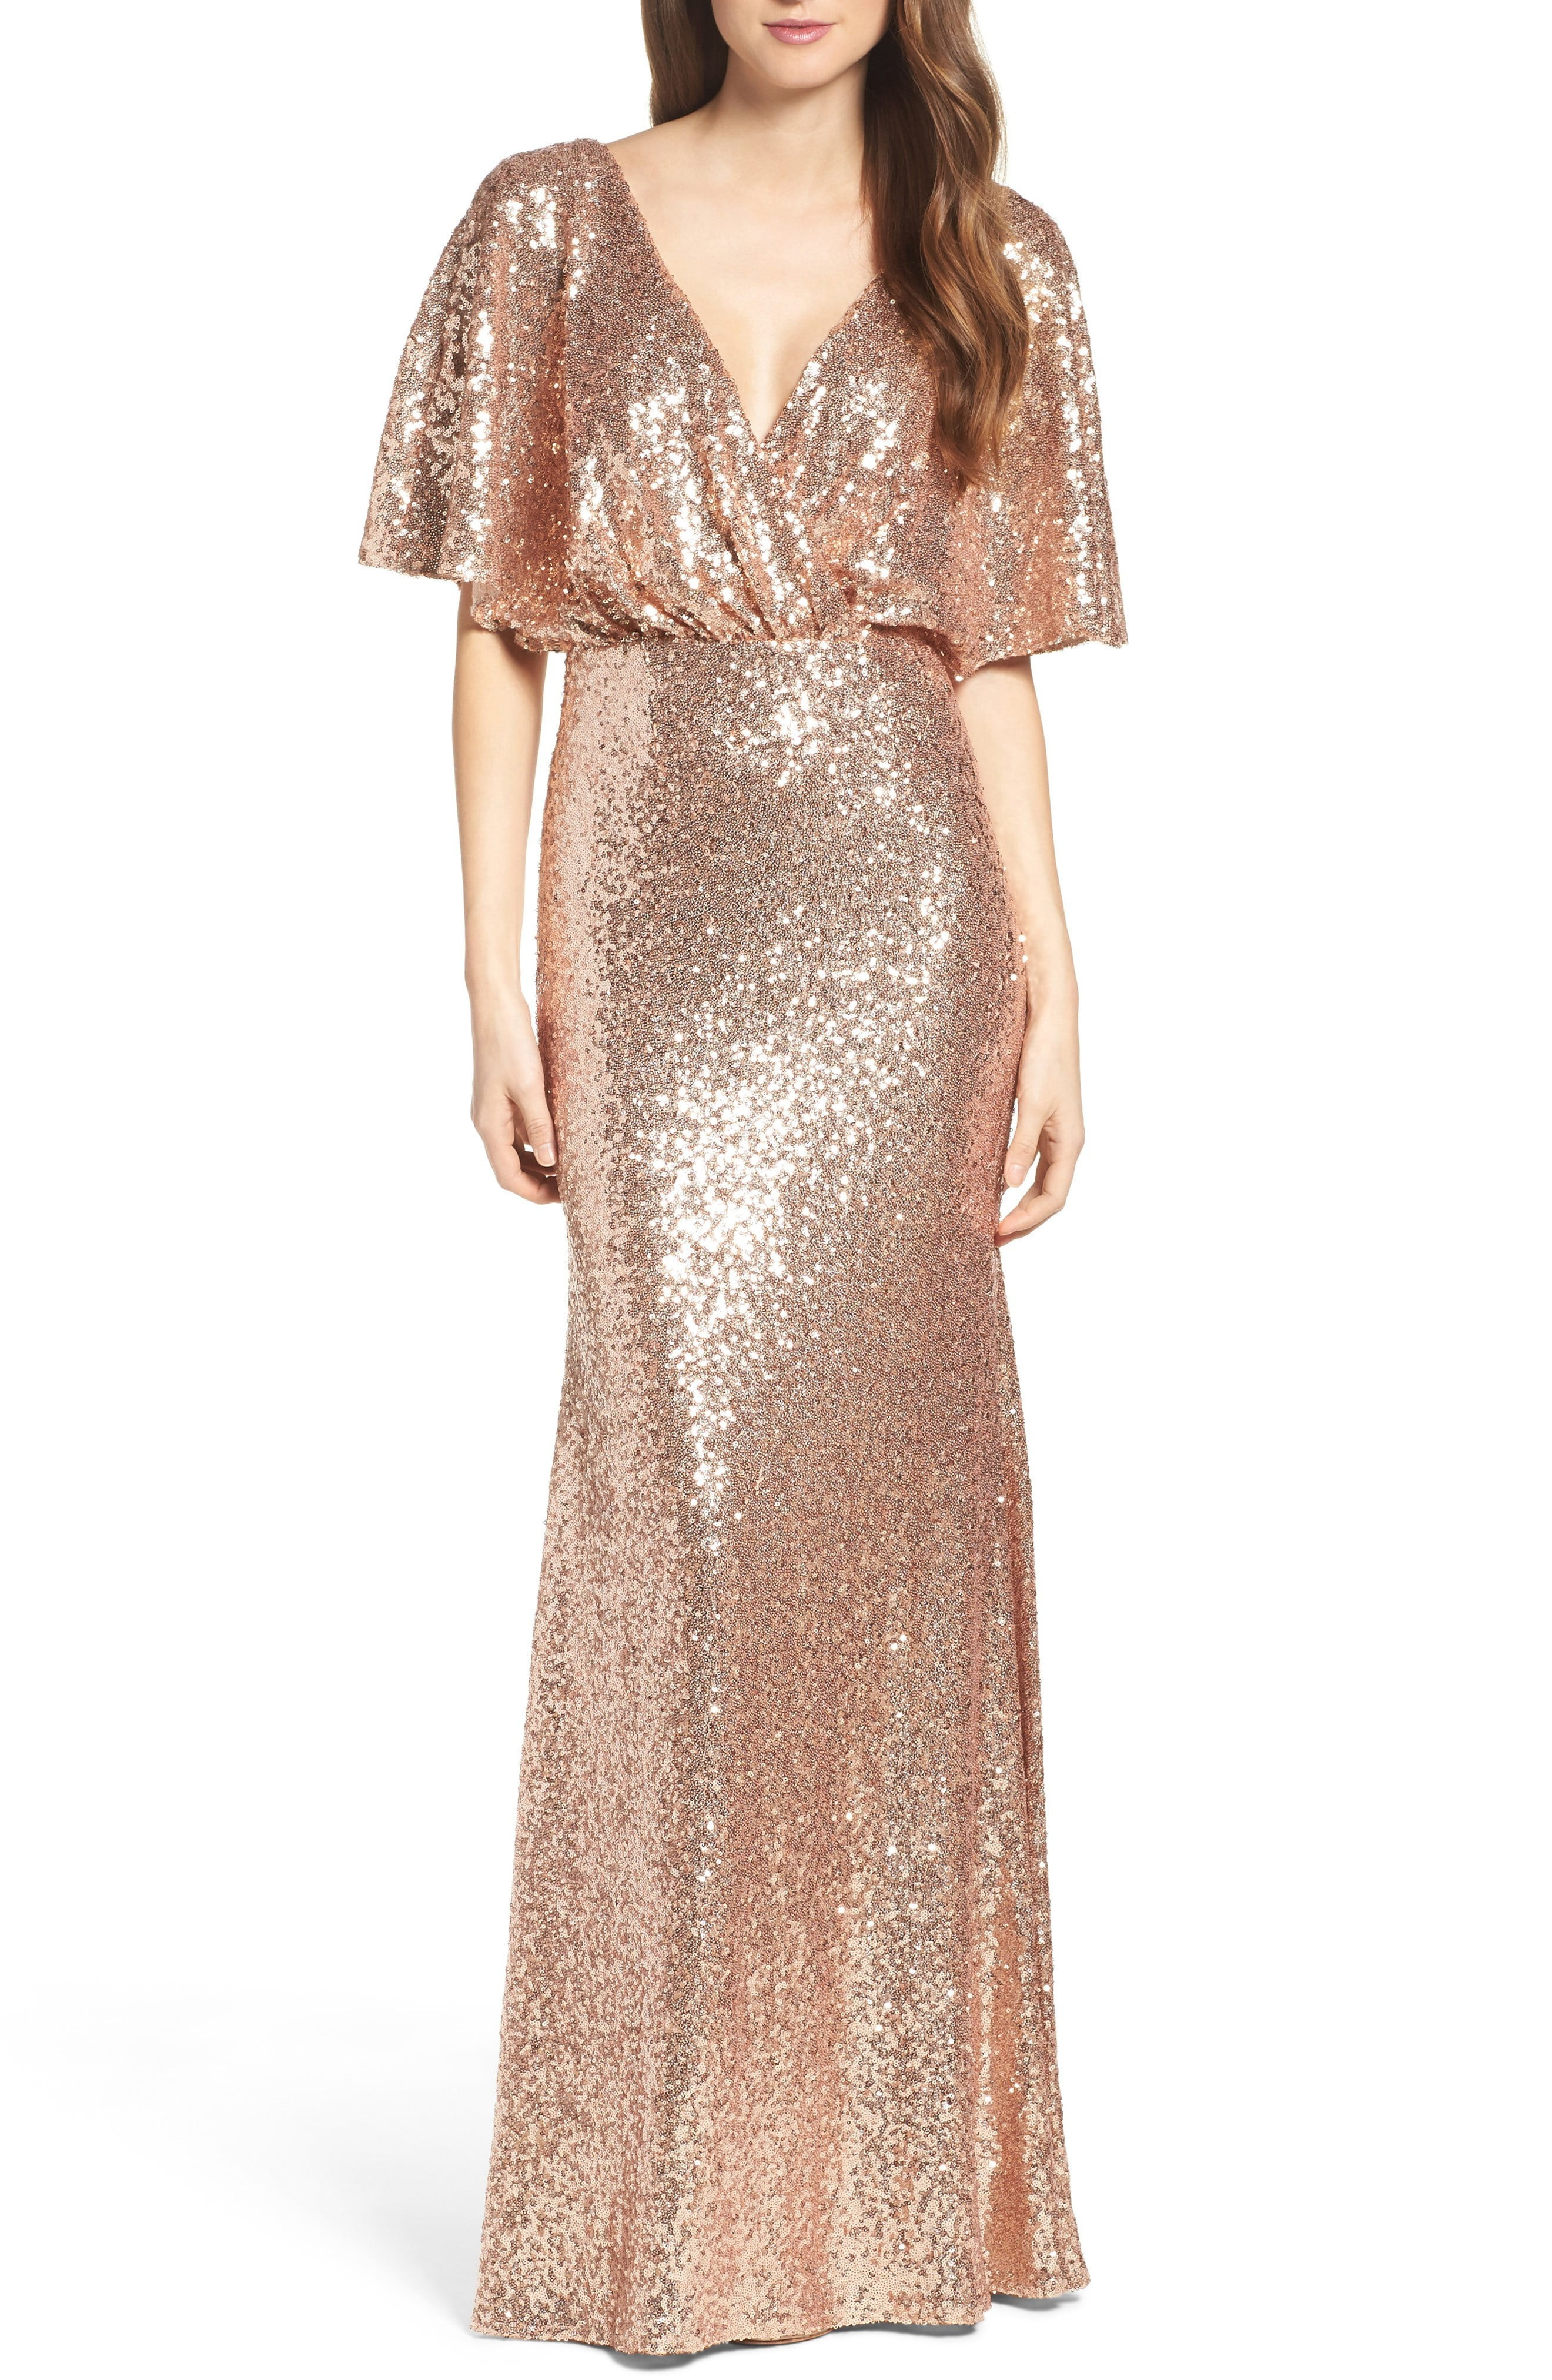 34 glamorous and gorgeous sequin bridesmaids dresses junebug weddings shop rose gold sequin bridesmaids dresses ombrellifo Images